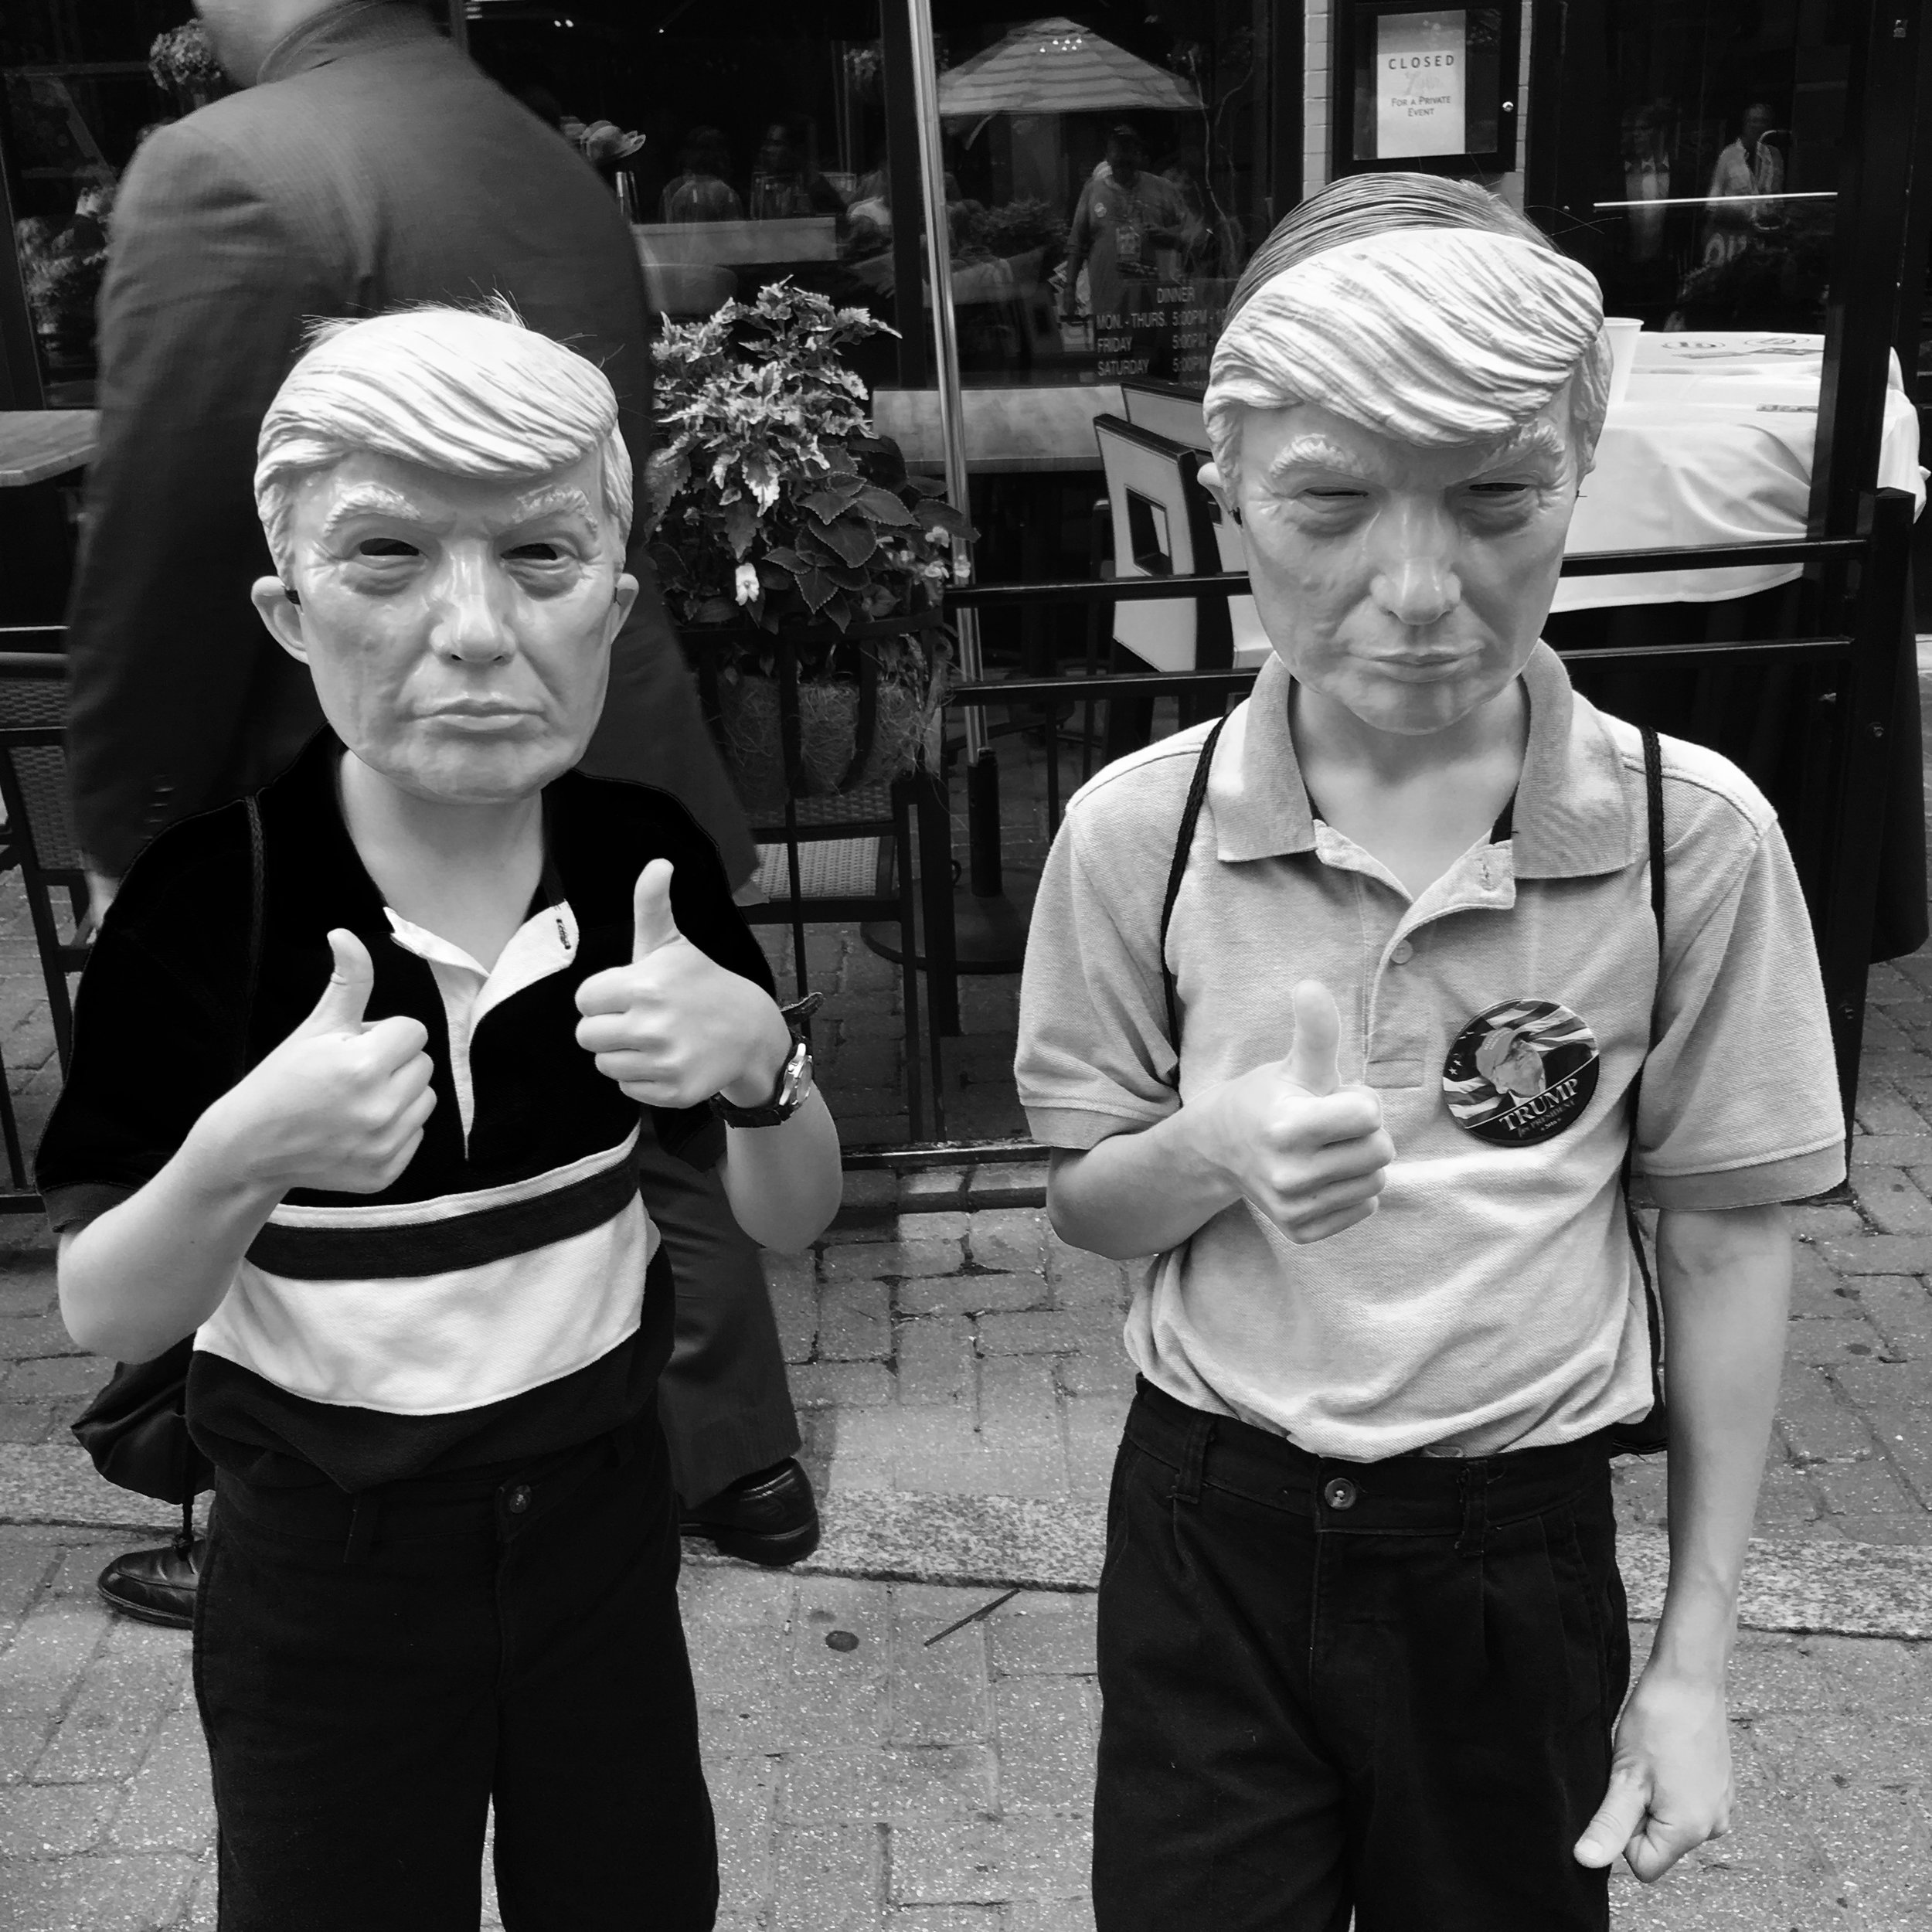 """ Tomorrow Belongs To Me  - Cleveland, 2016"" Photo © by Tony Puryear, 2016 all rights reserved. Photo of two boys in Donald Trump masks at Republican National Convention."